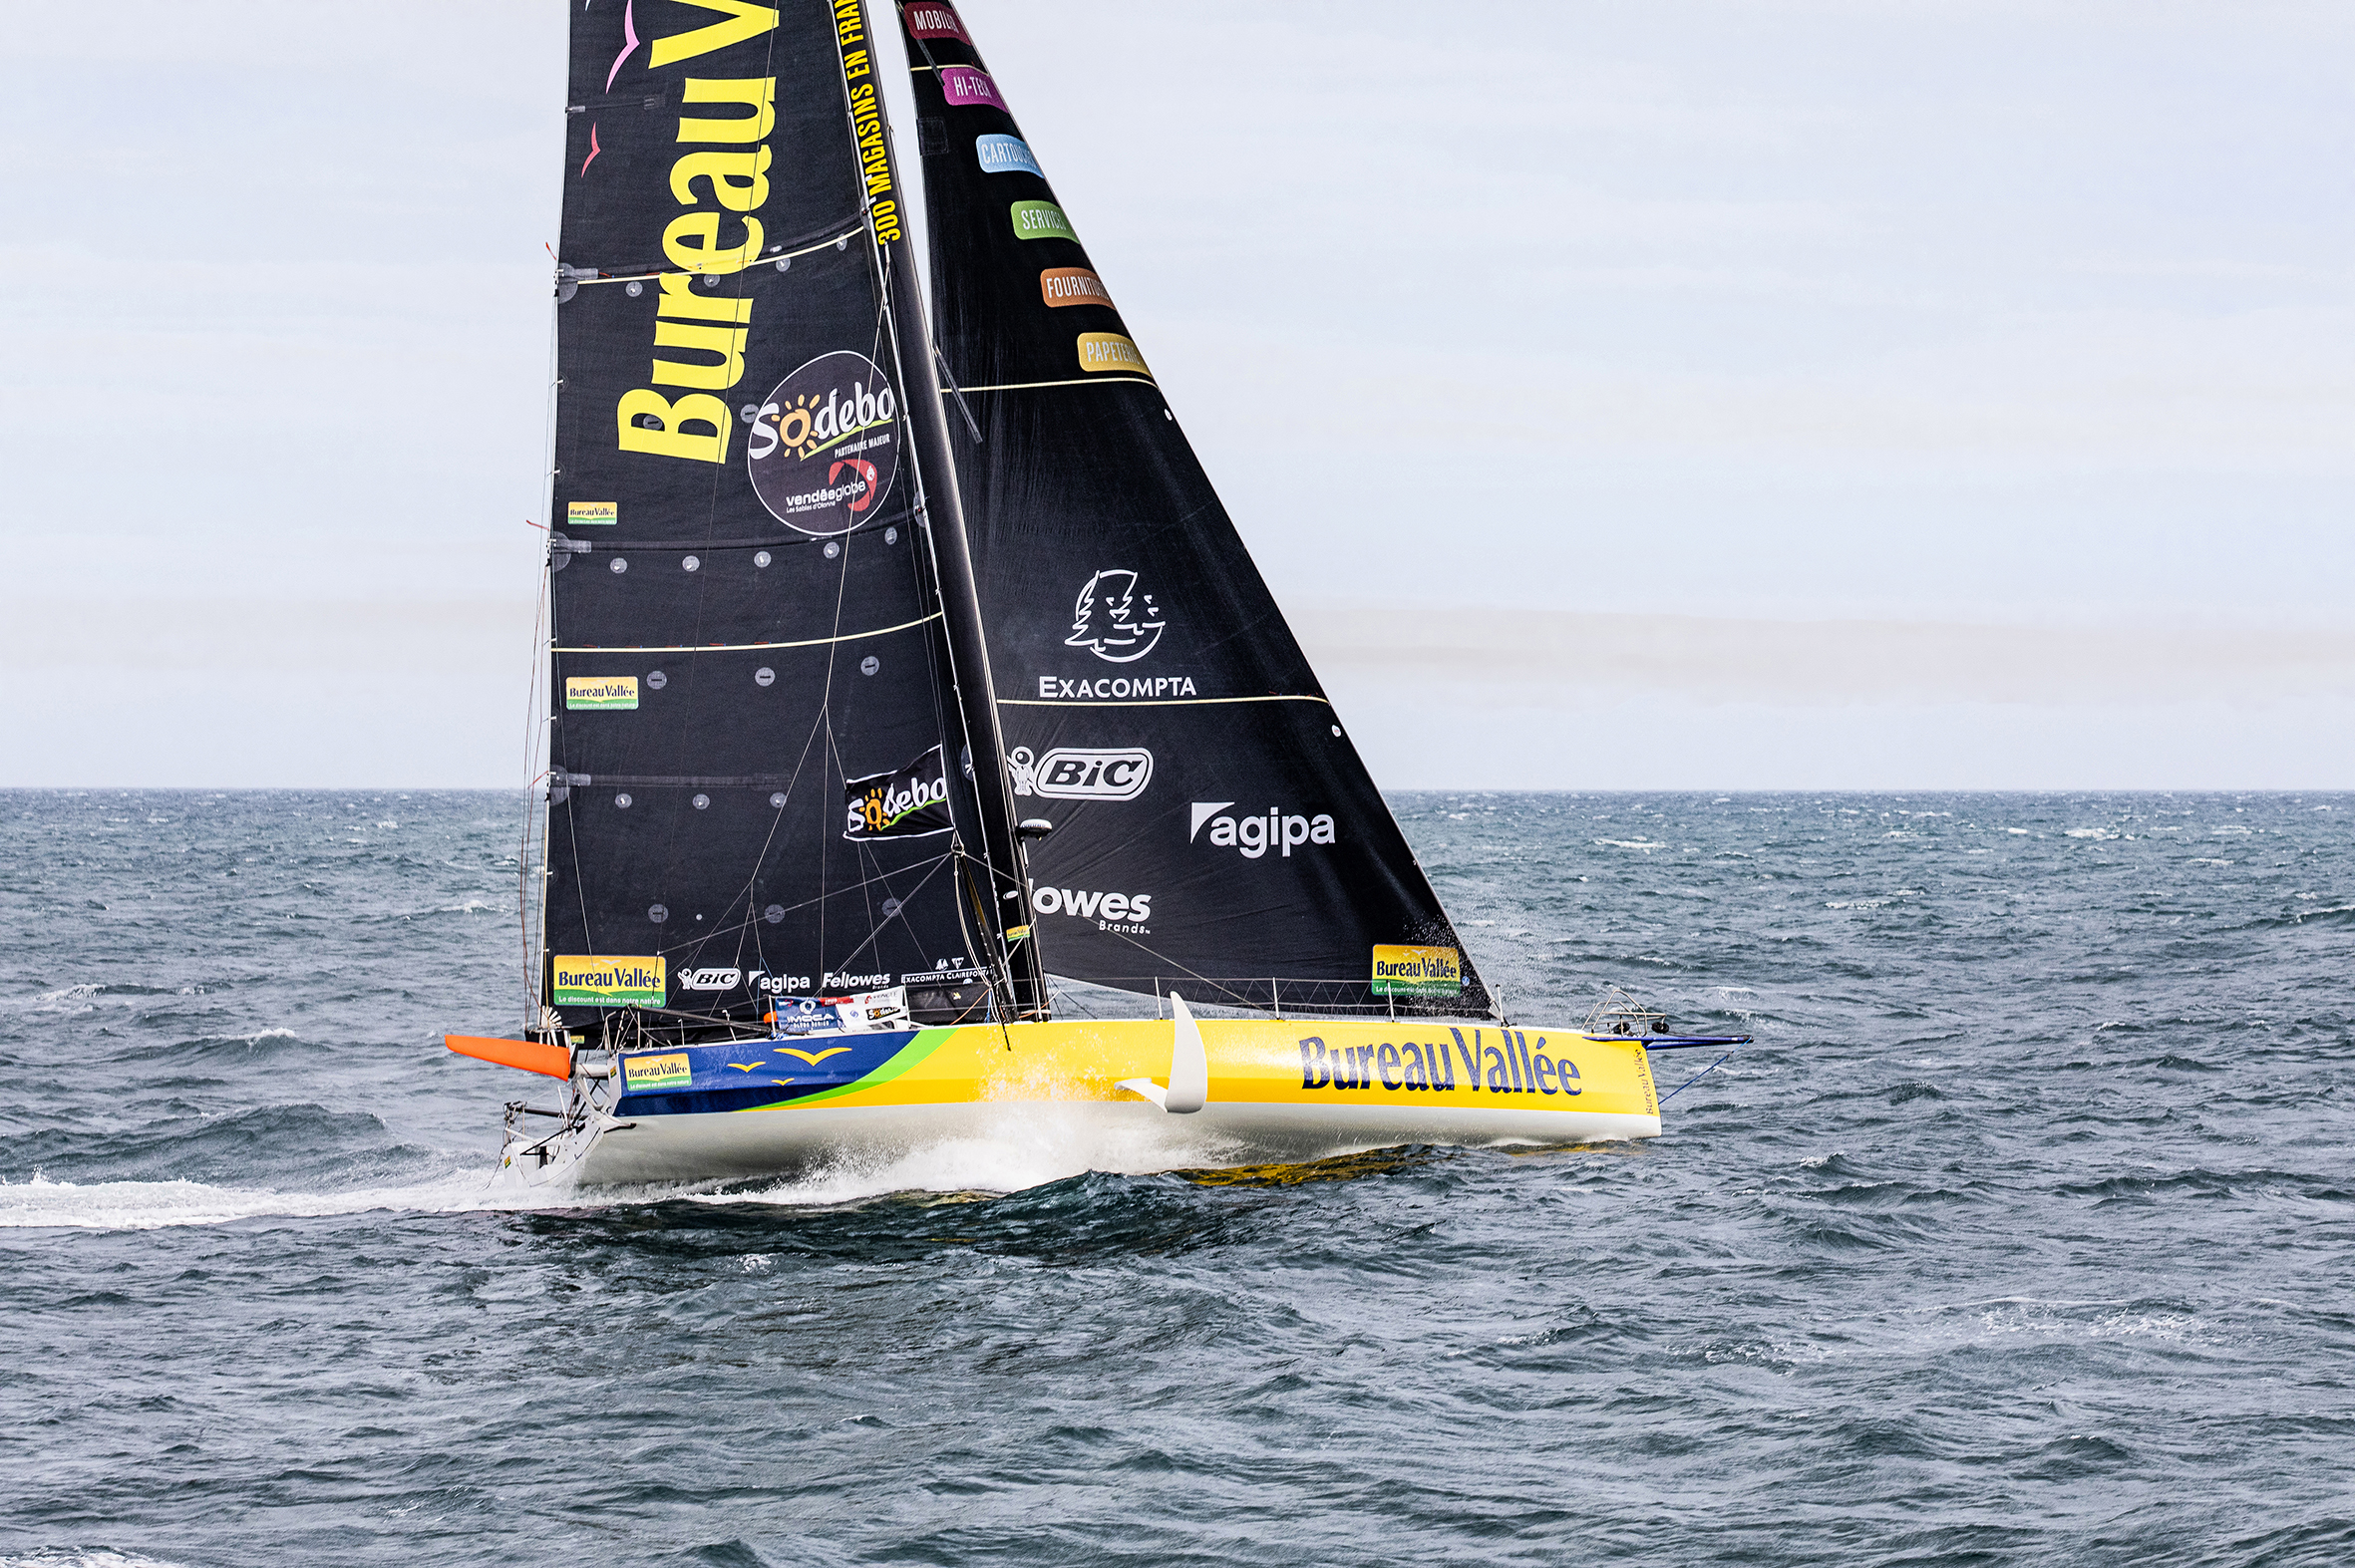 Profurl proud to equip 2020 / 2021 Vendée Globe winner